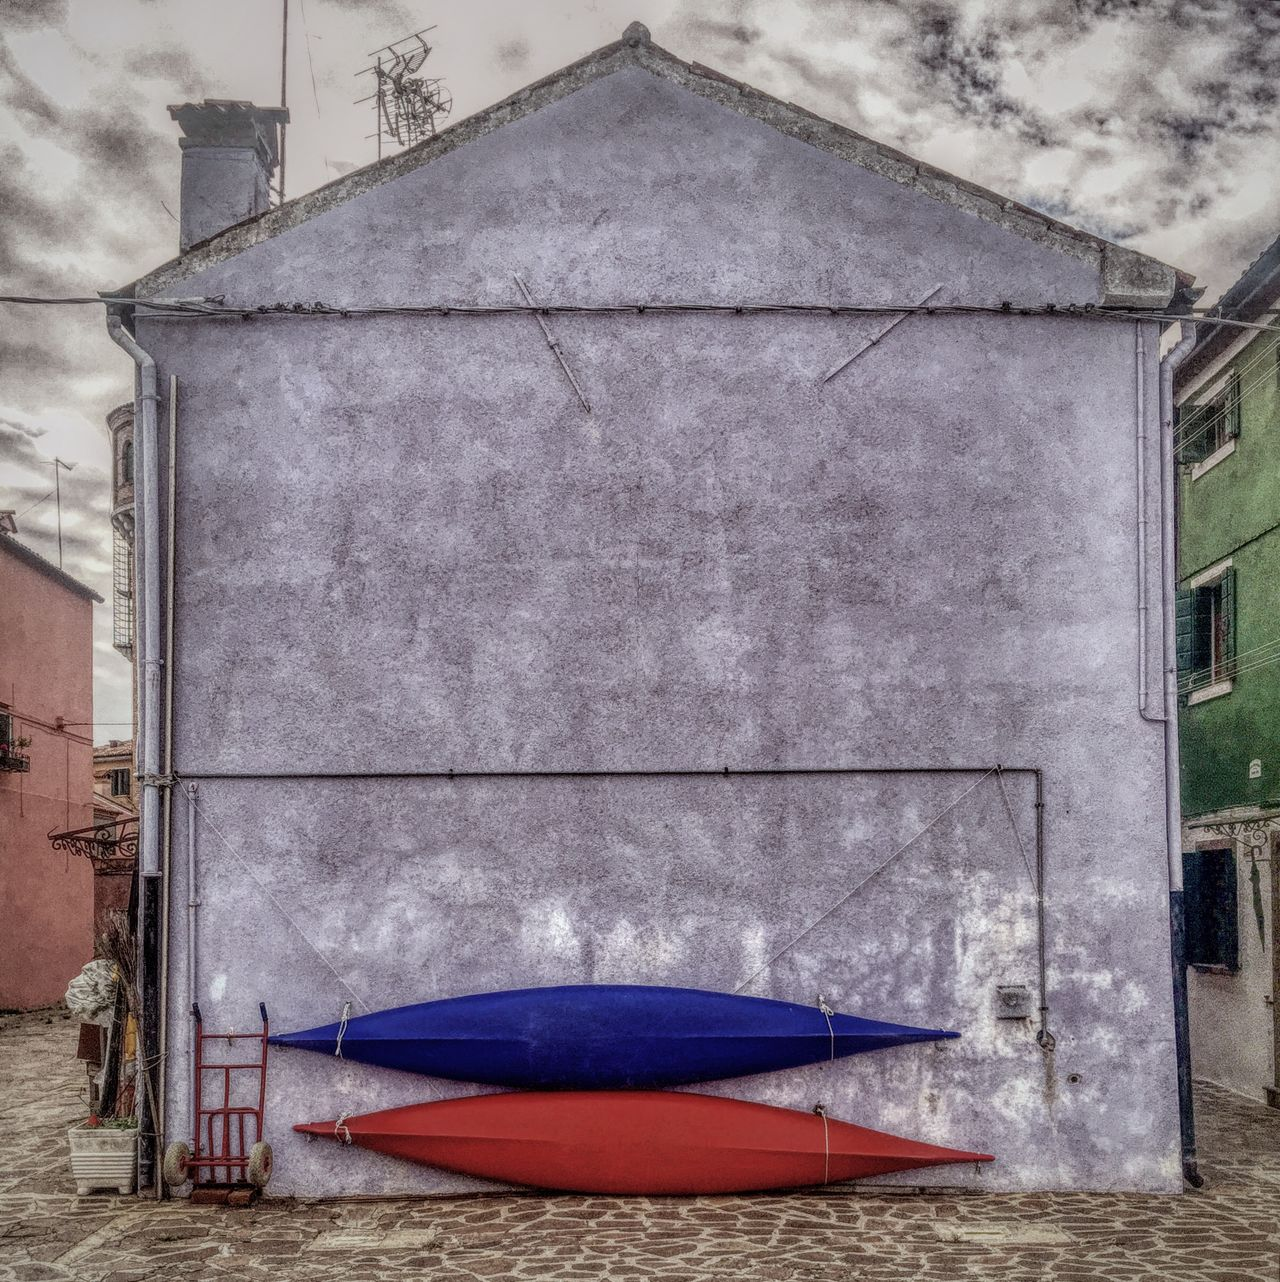 Architecture Blue Color Building Exterior Built Structure Canal Canoes Day House No People Outdoors Red Color Sky Texture